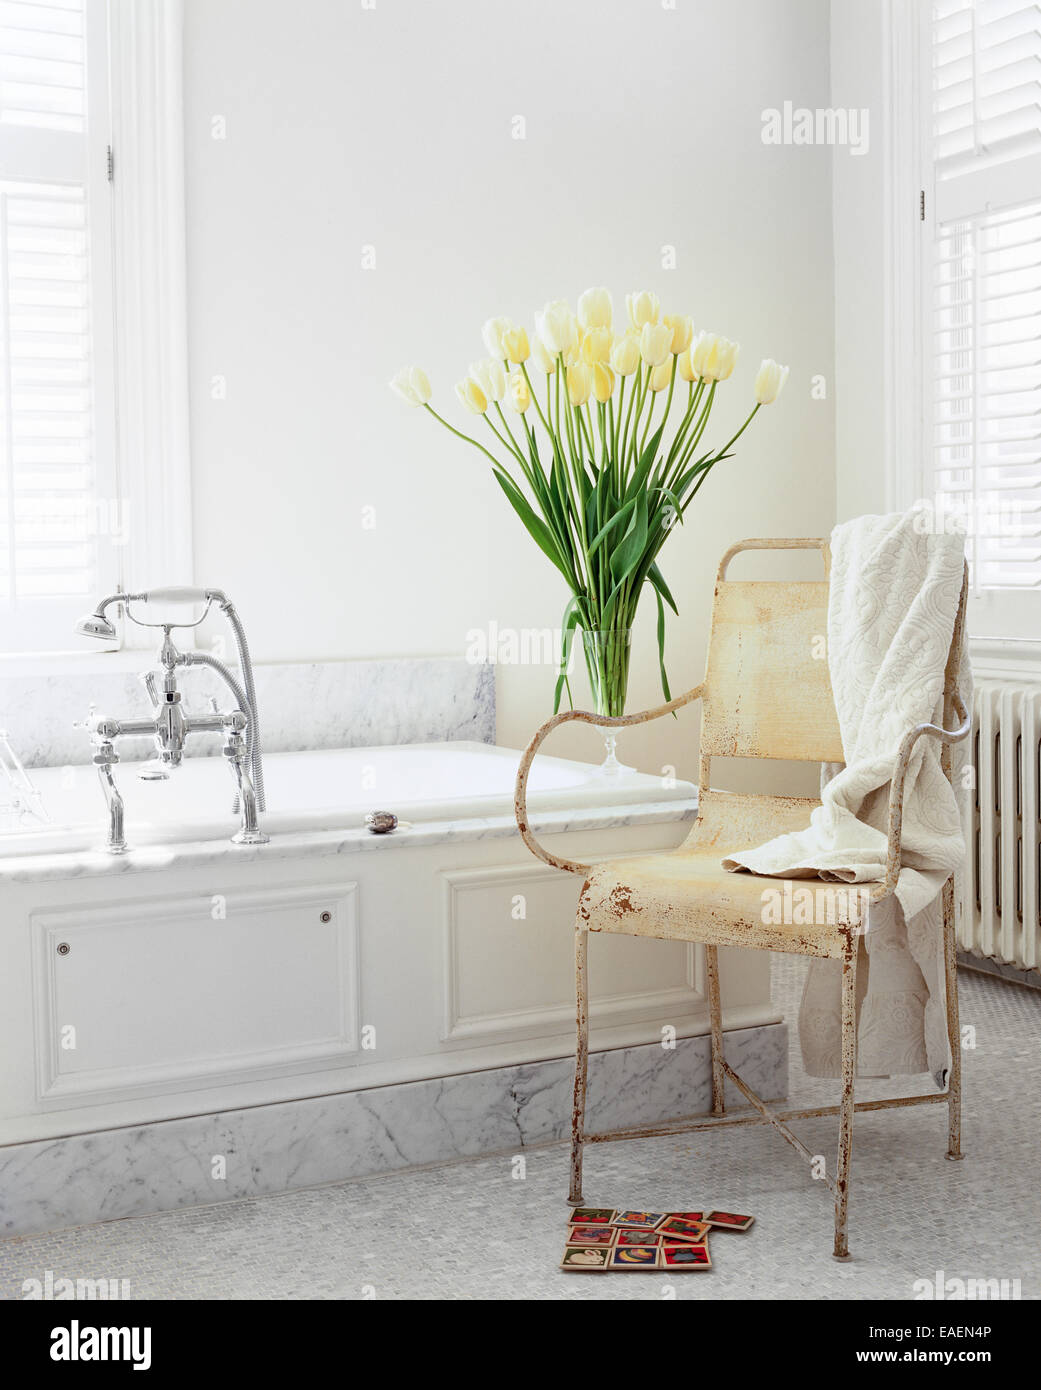 modern shabby chic white bathroom with marble, white tulips and old garden chair - Stock Image